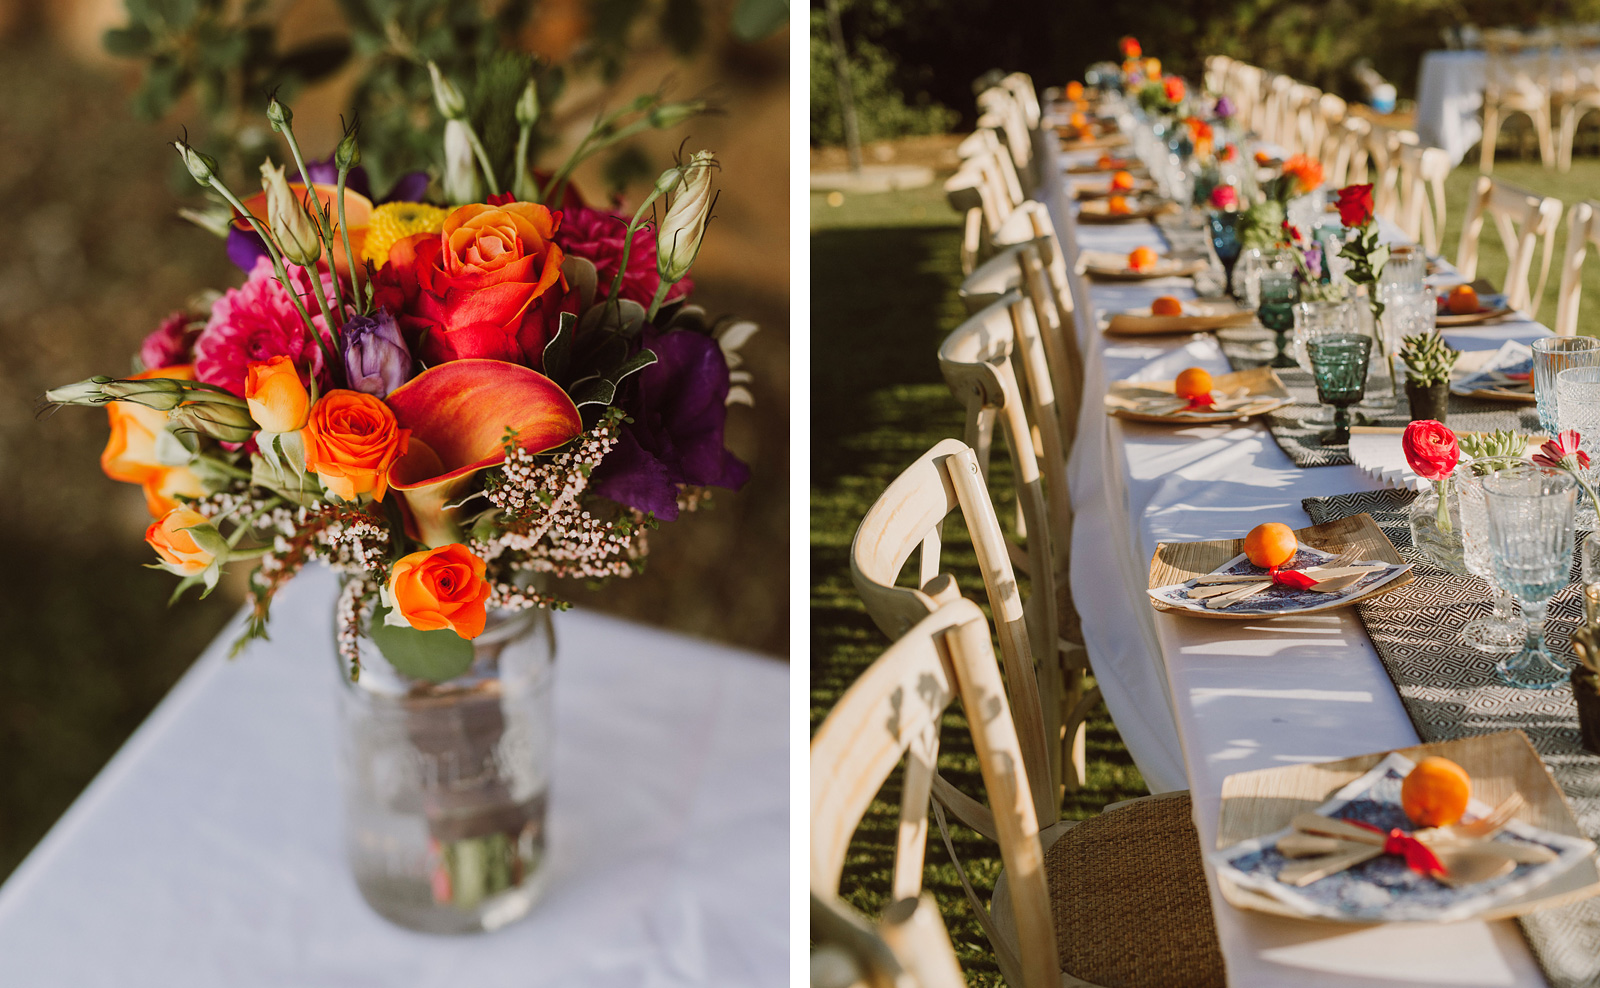 Decorations and table centerpieces at a Sacred Mountain Retreat Wedding